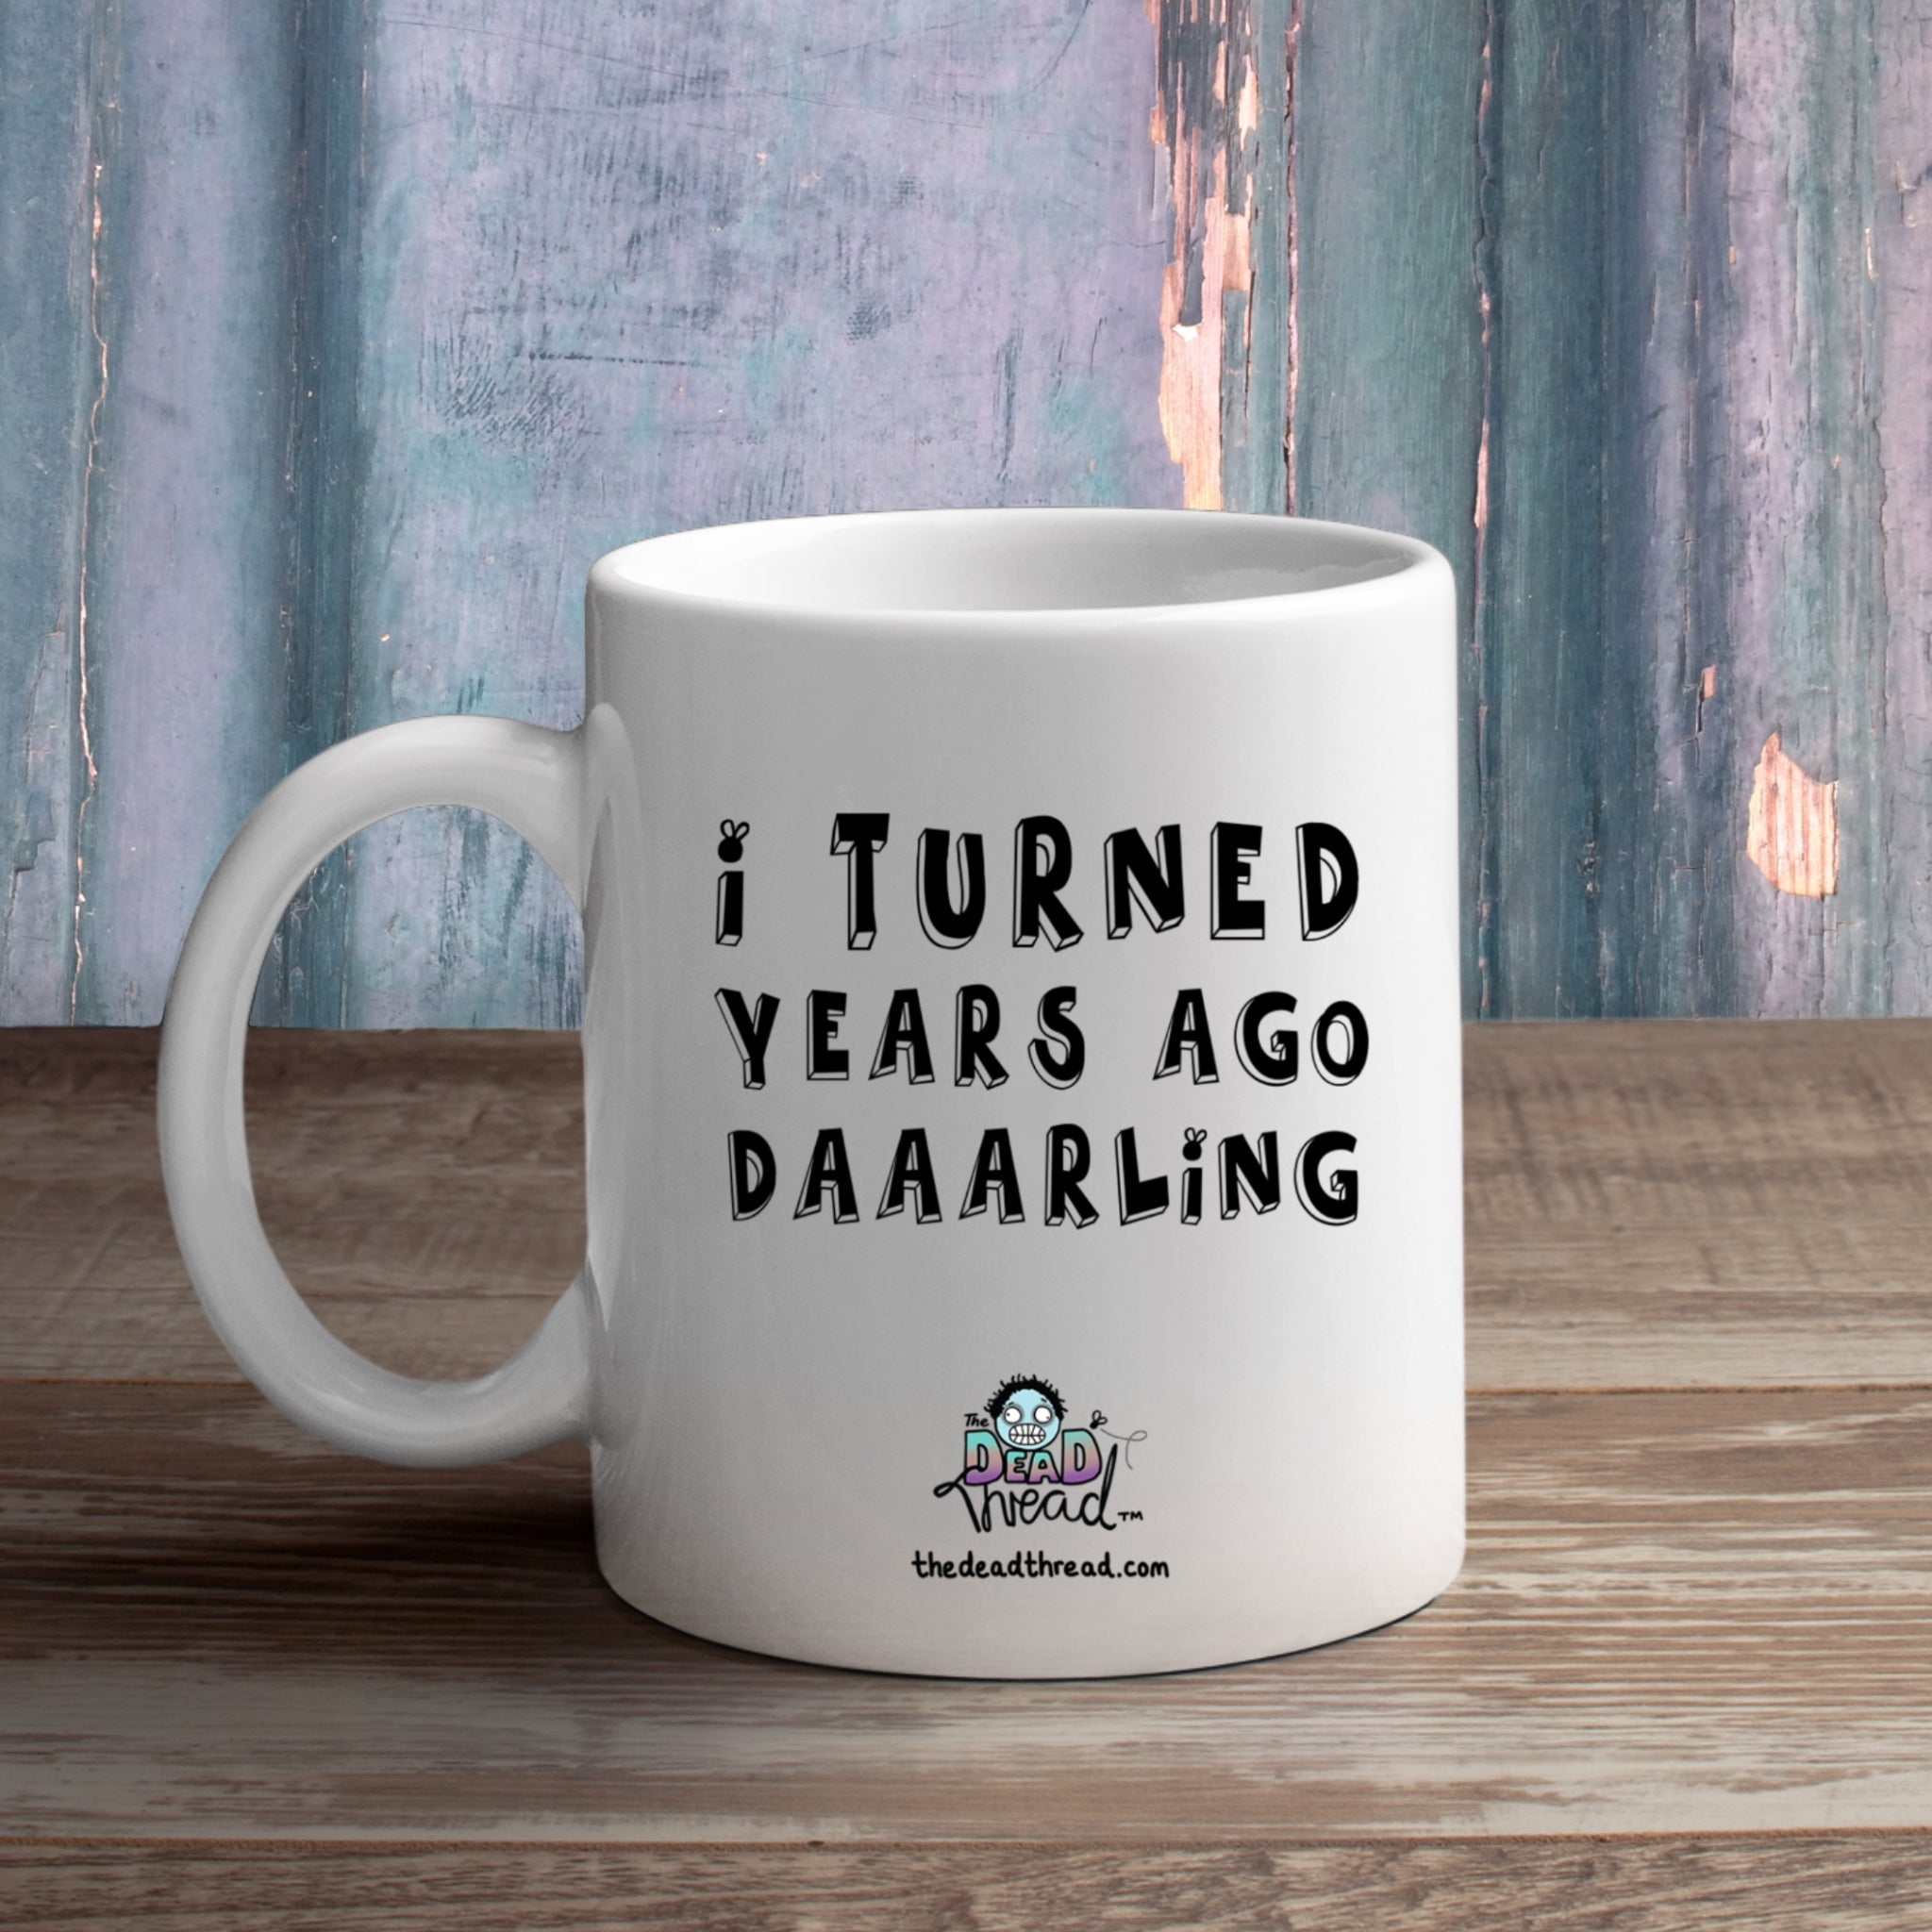 I Turned Years Ago Daaarling! (male zombie) Mug from The Dead Thread™